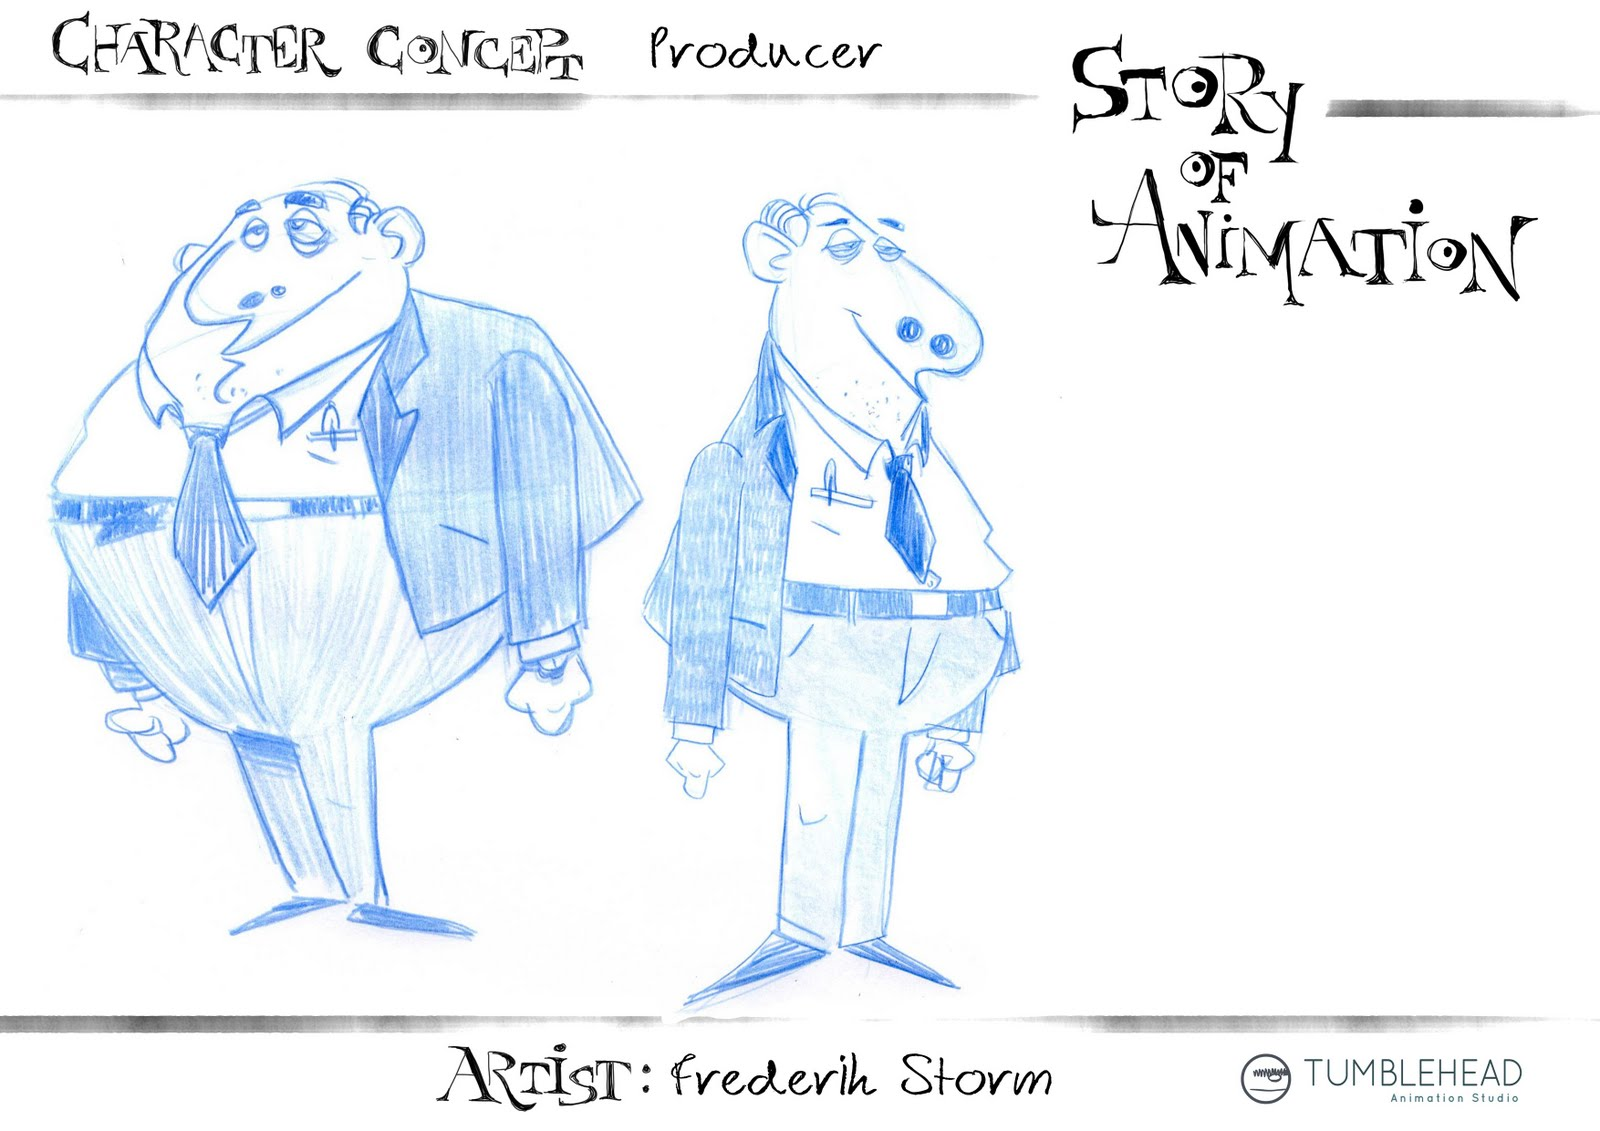 Character Design Presentation : The story of animation week monday character design